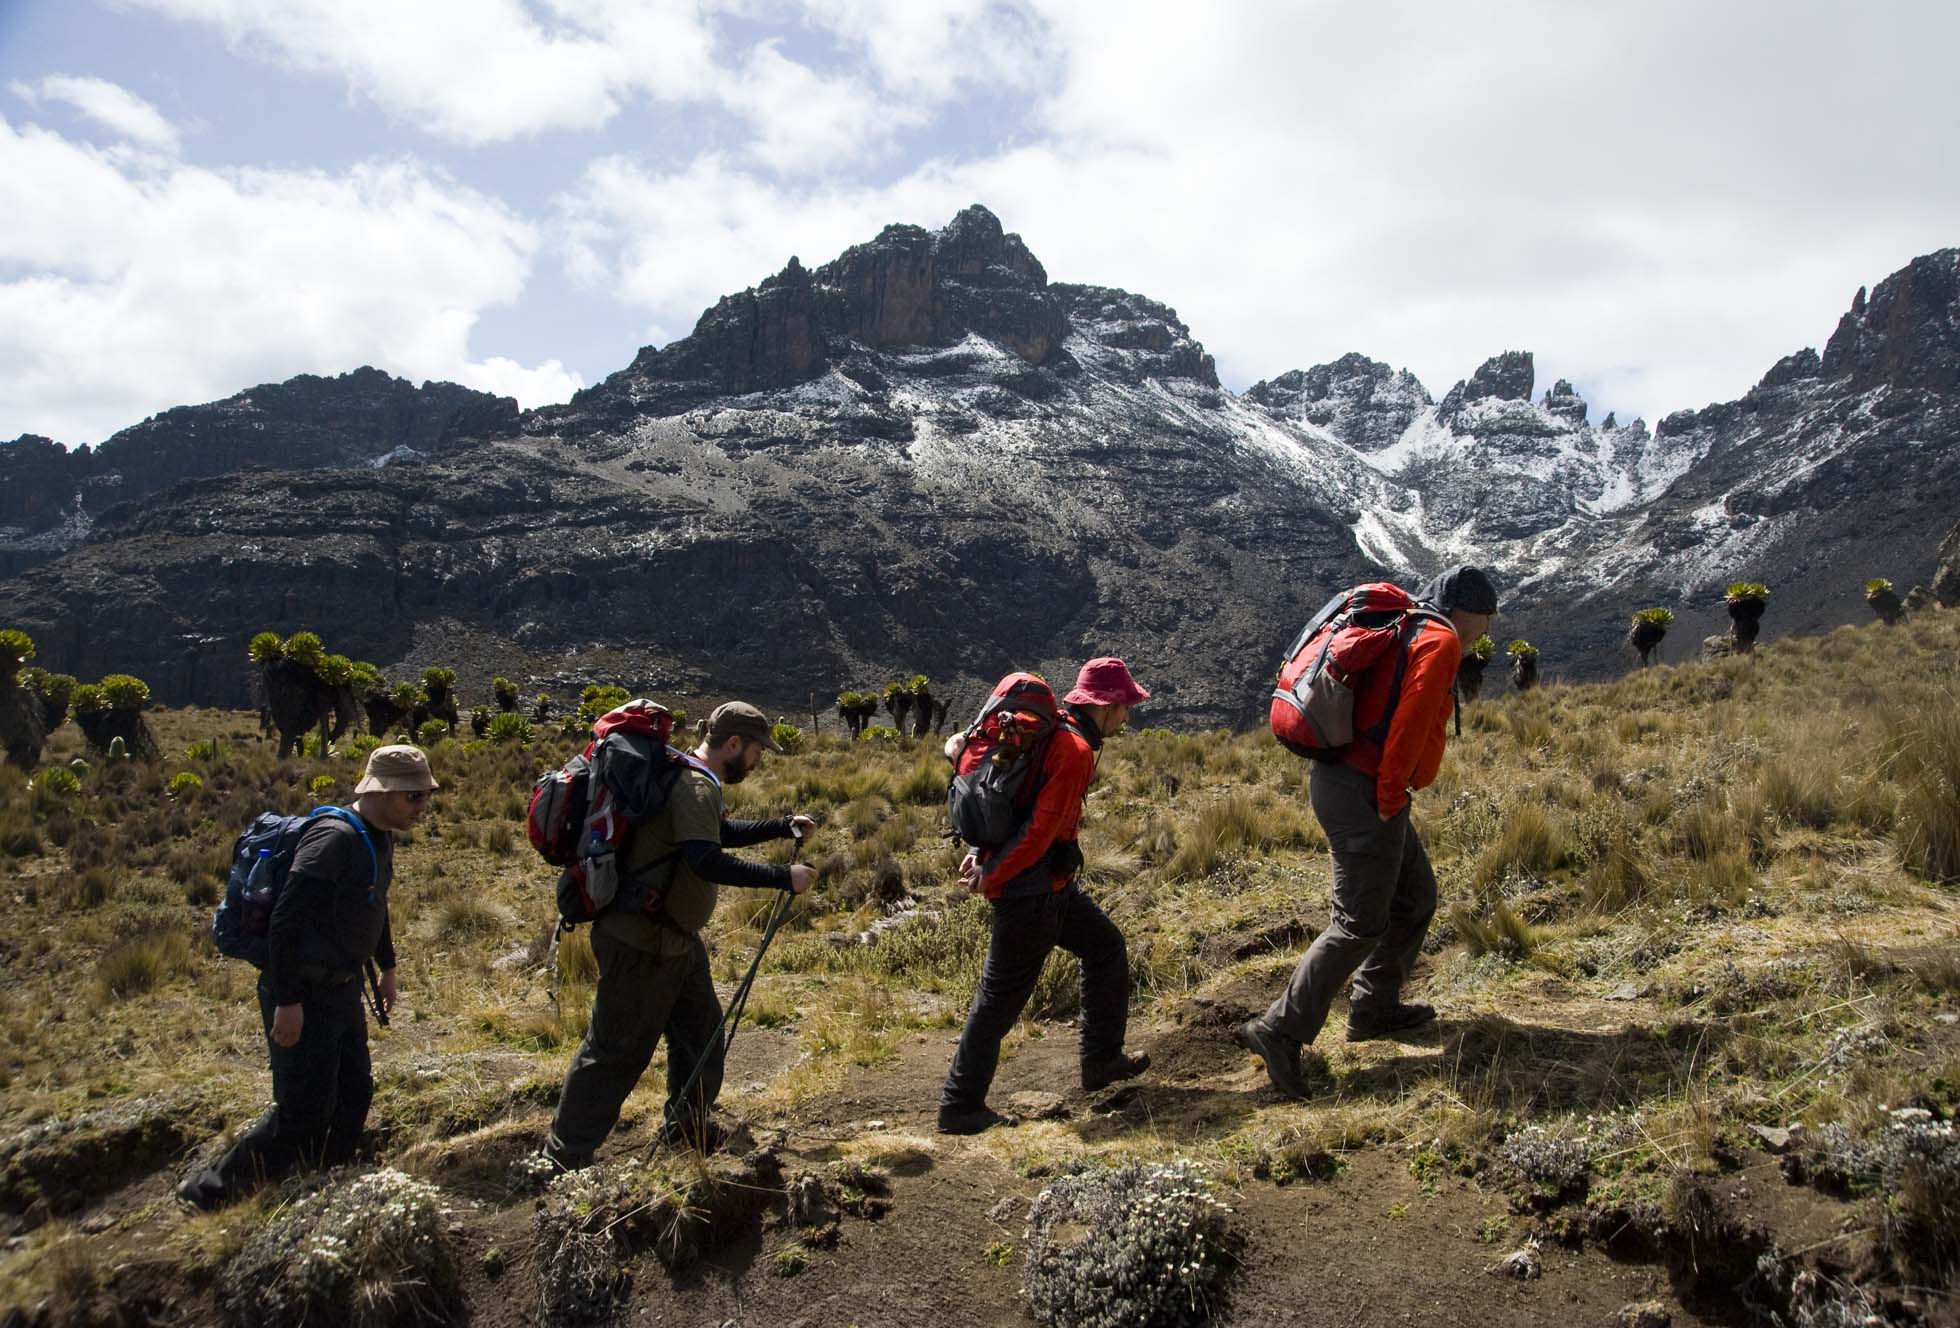 Africa mountain climbing and cycling festivals